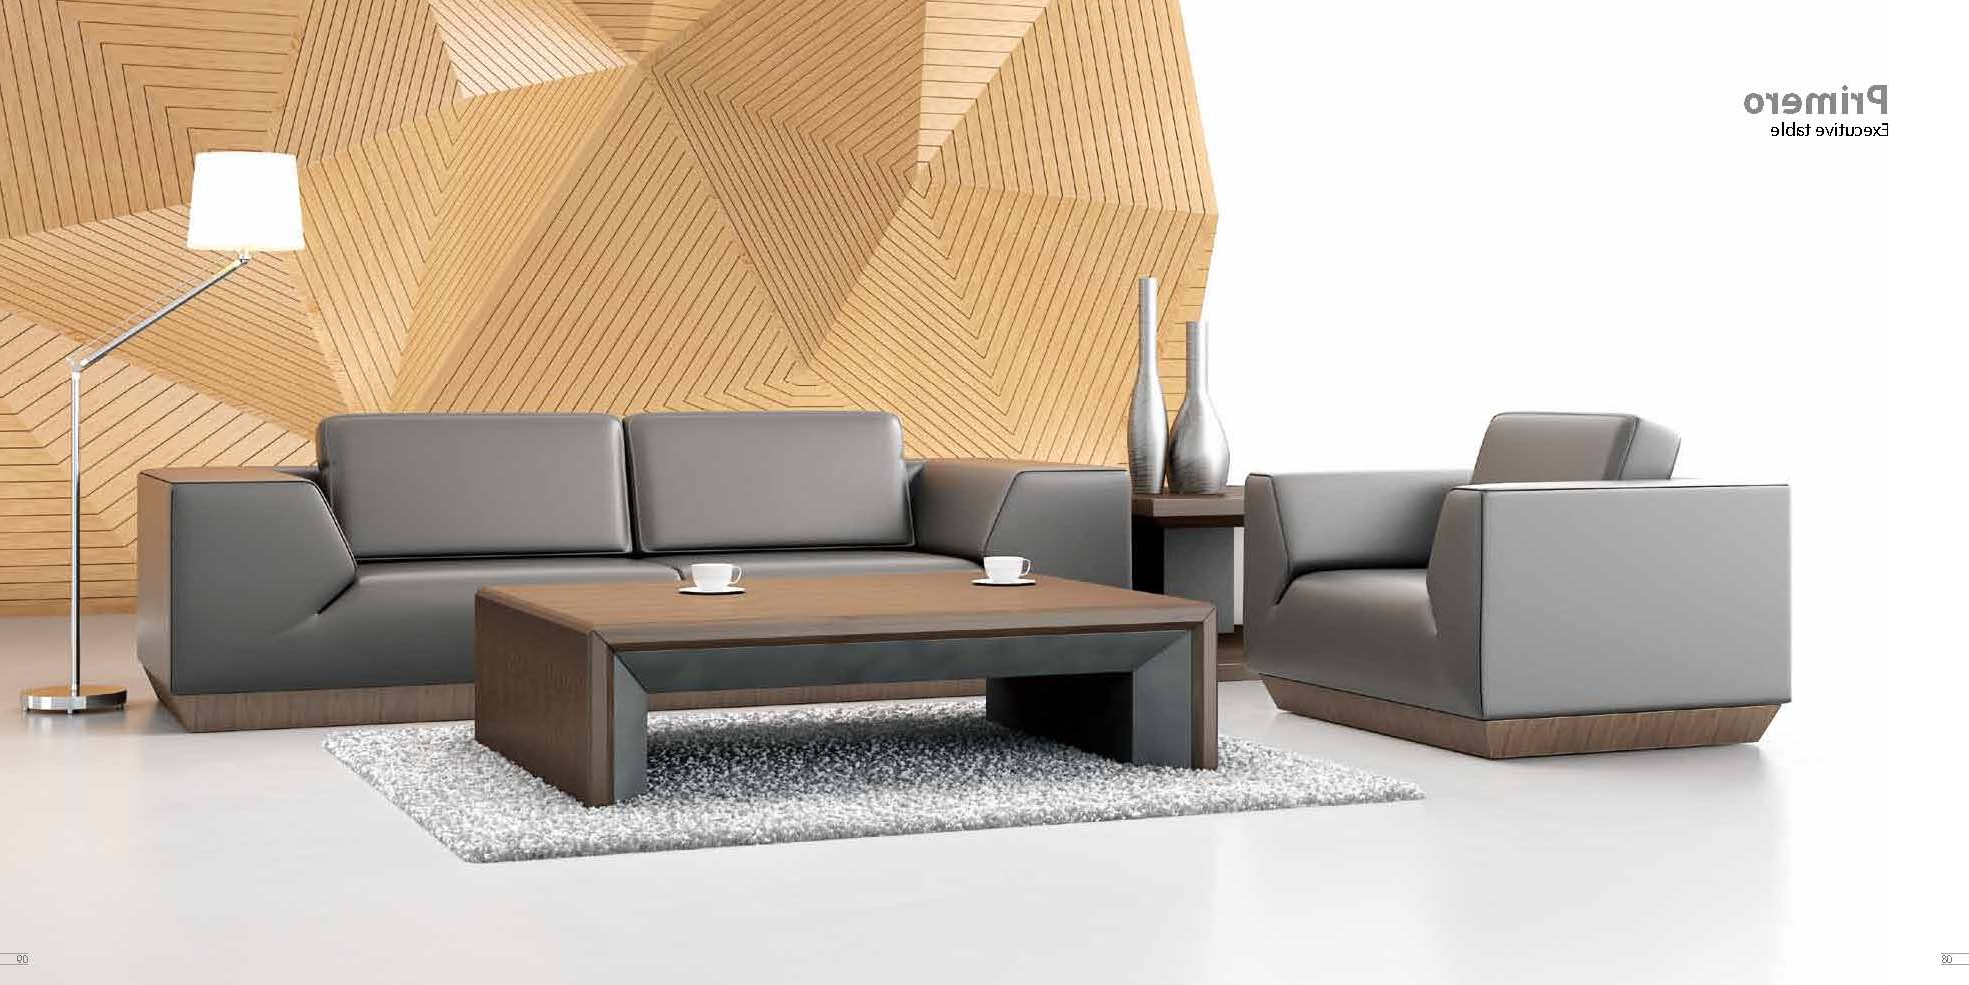 Office Sofa Chairs Regarding Most Recently Released Awesome Sofas And Chairs 21 Office Sofa Ideas With Sofas And Chairs (View 6 of 20)